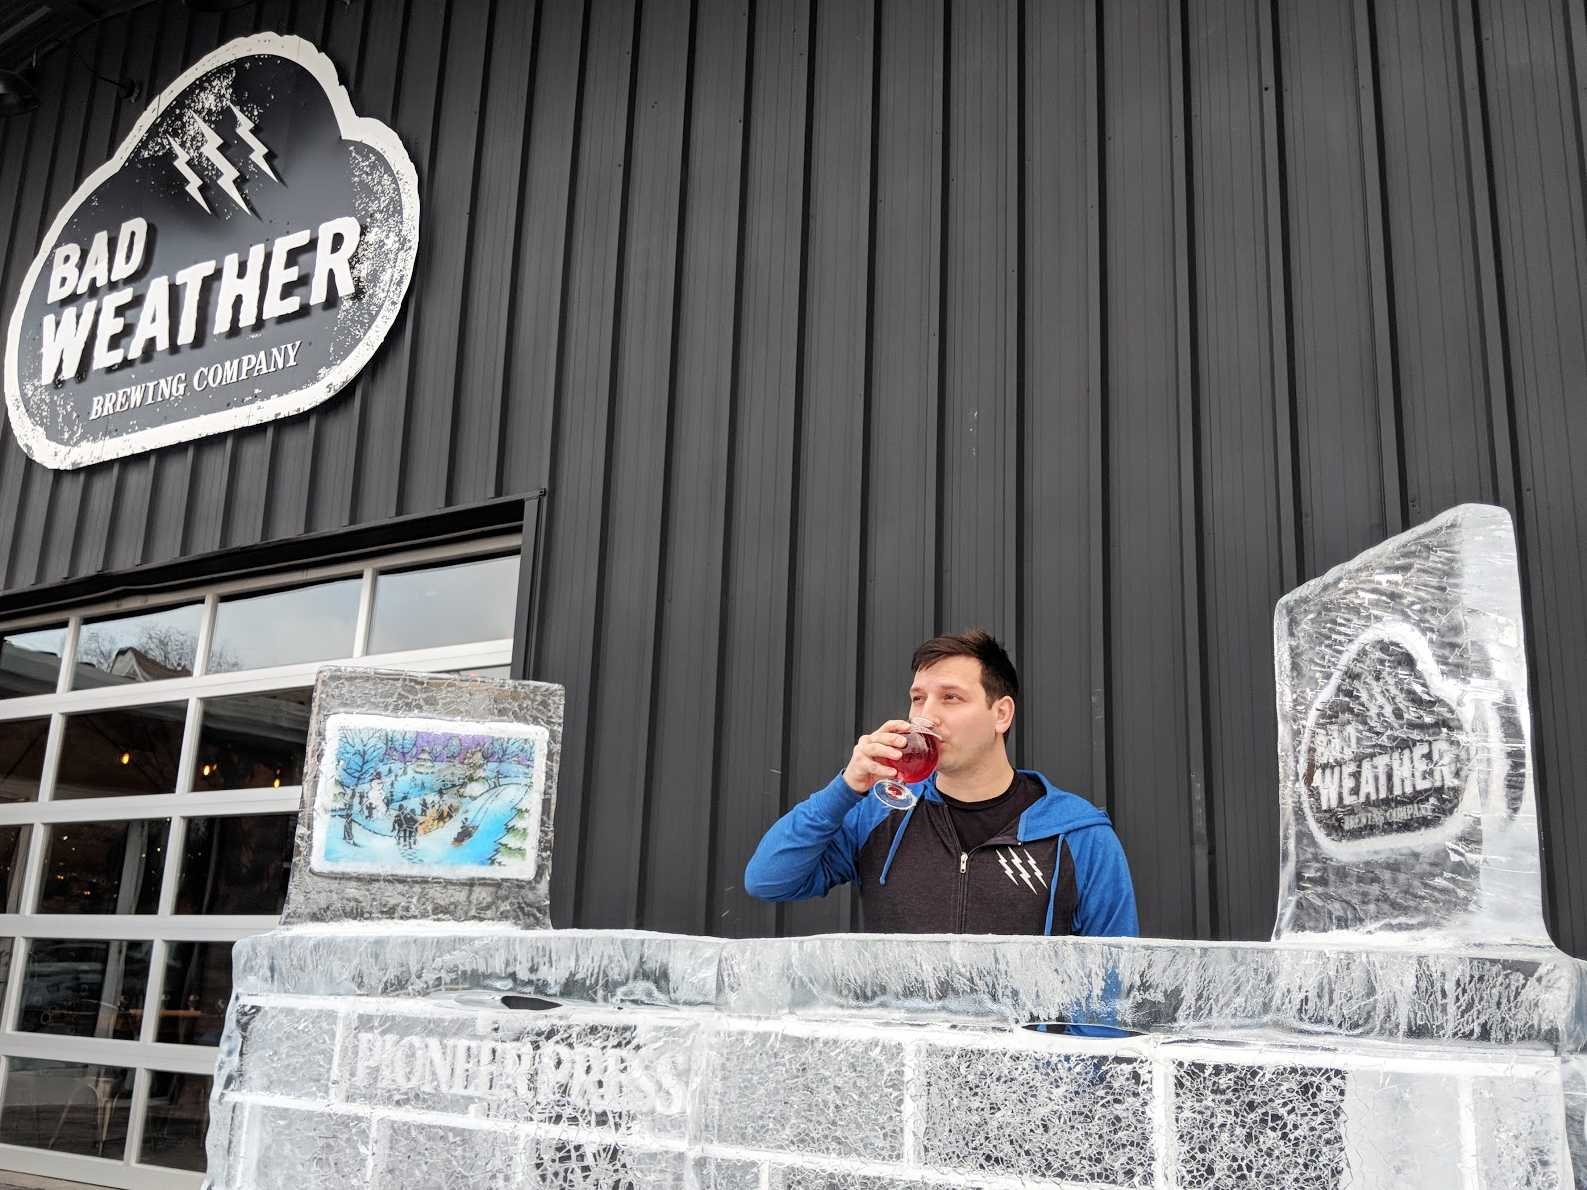 Joe Giambruno sips a craft brew outside Bad Weather Brewing Company. Photo courtesy of Henry Nieberg '19.